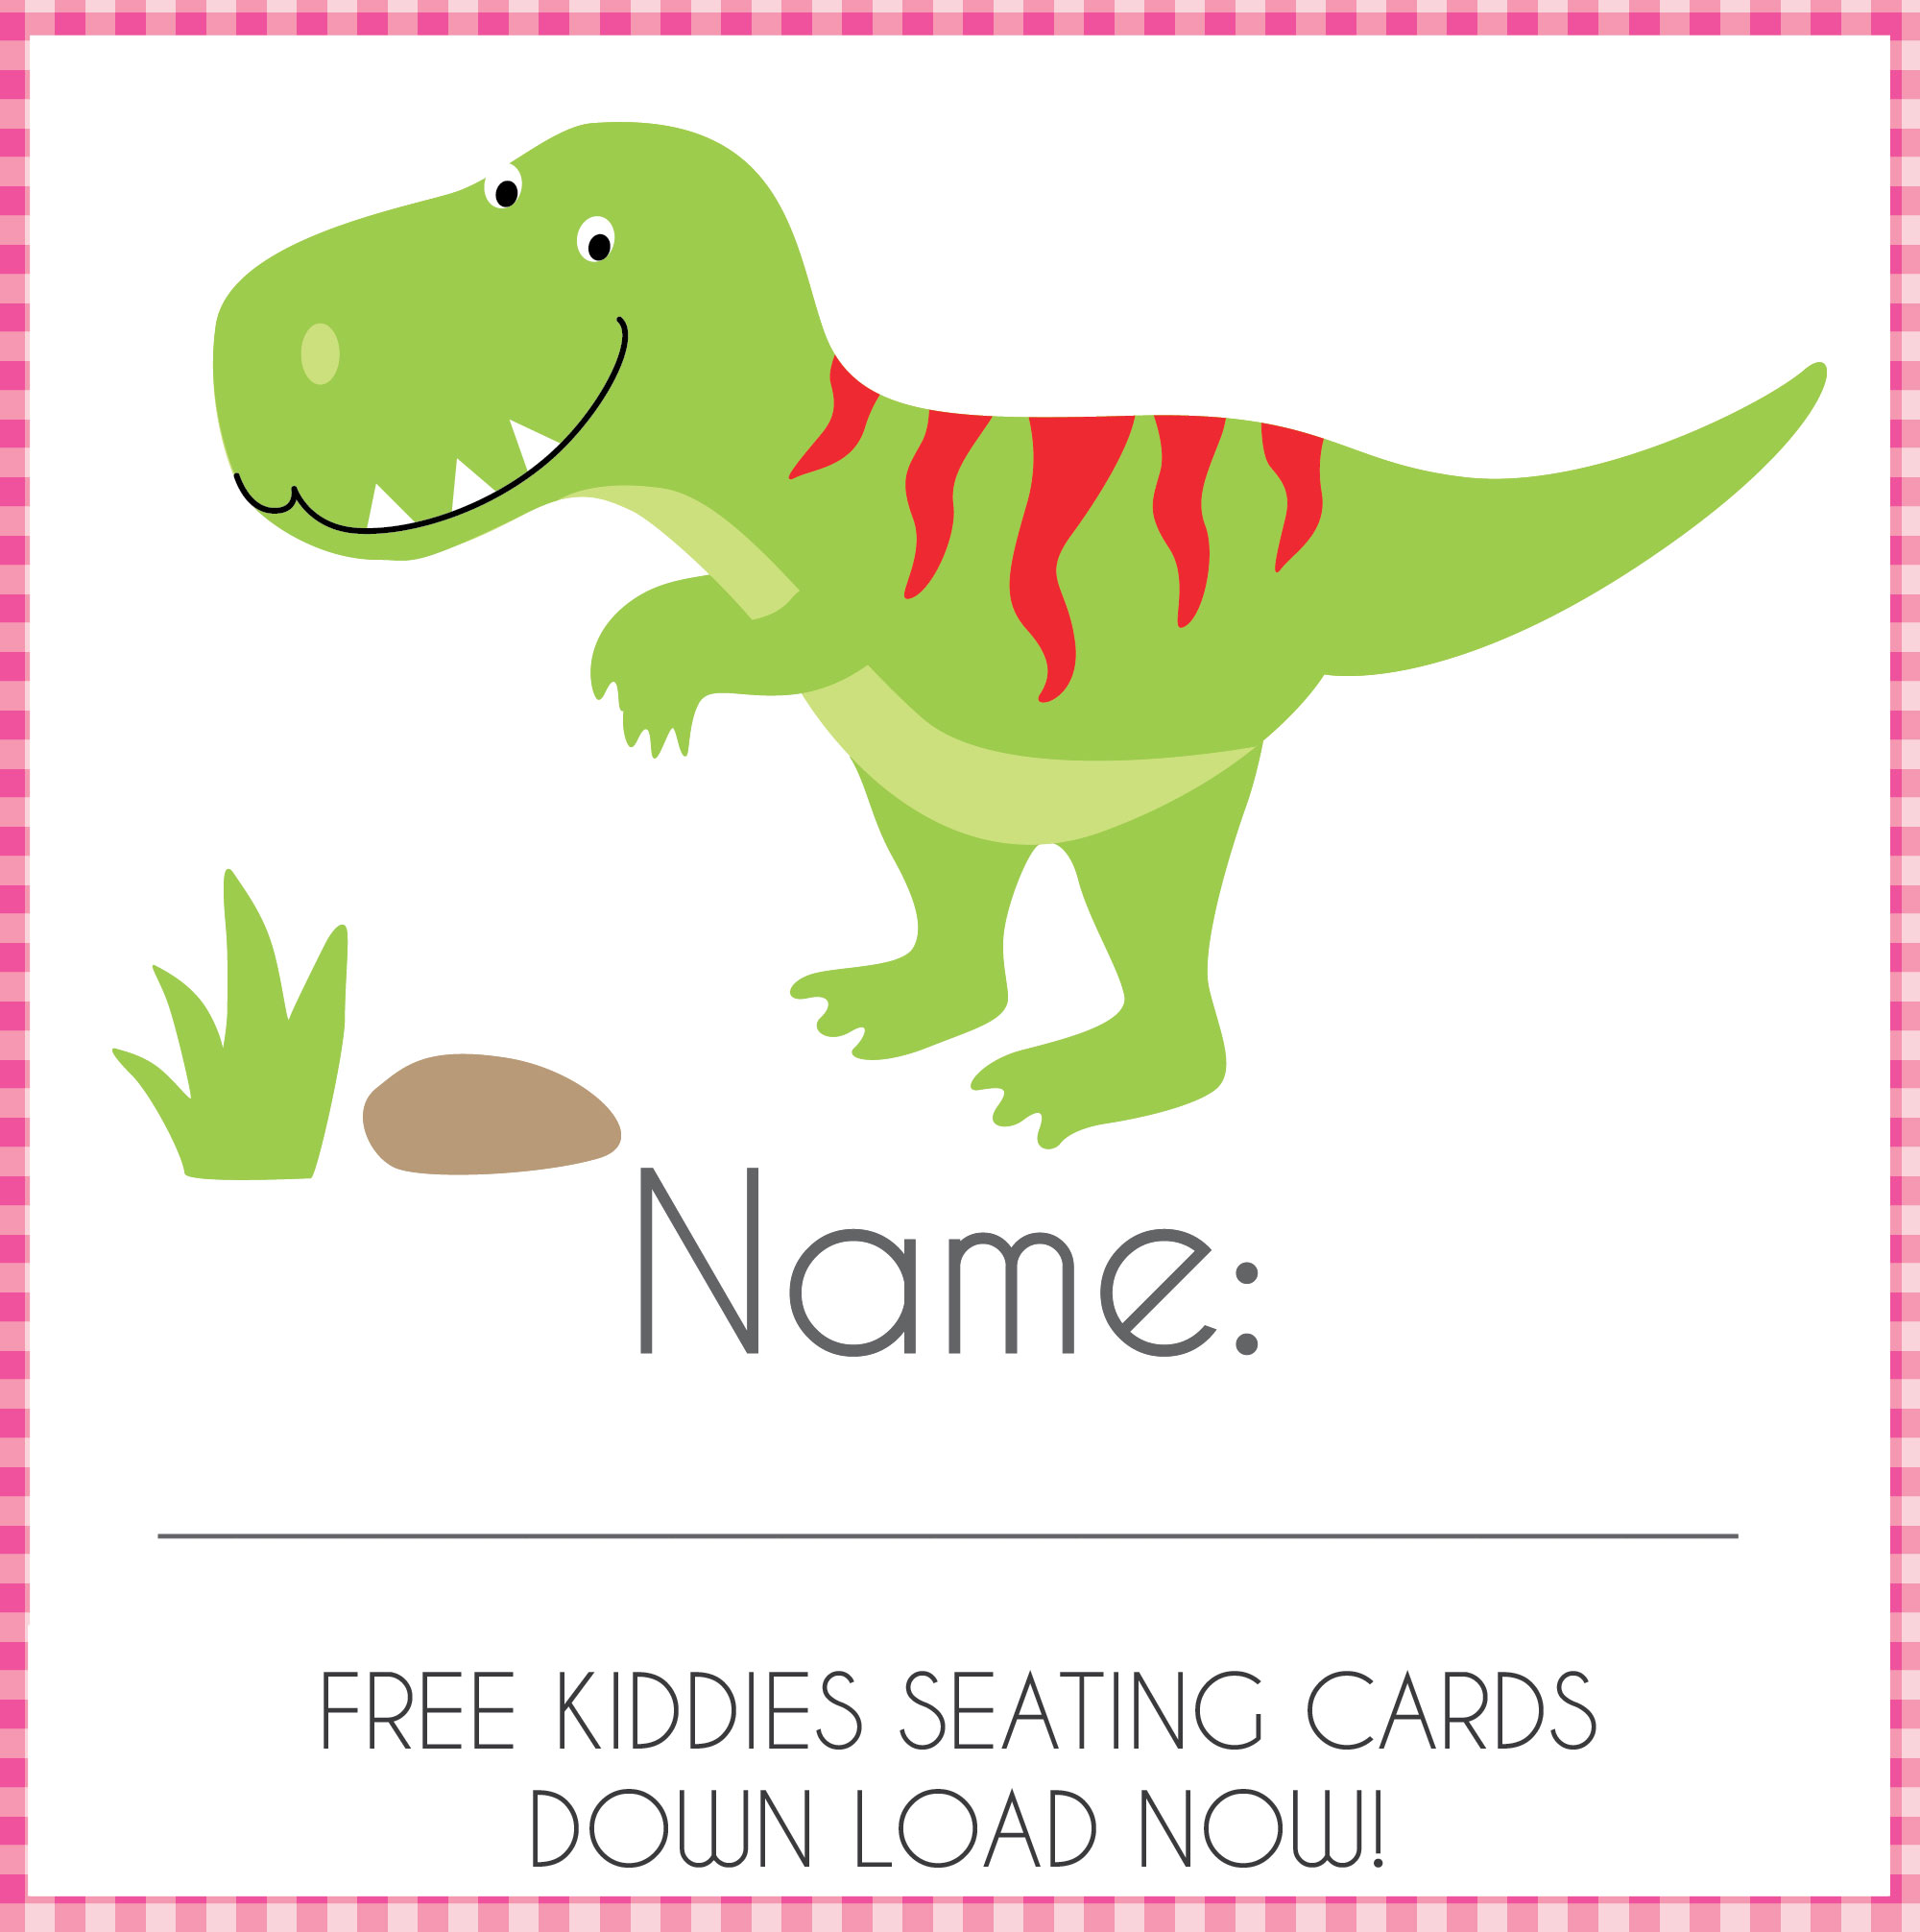 Enchanted Interiors FREE downloadable Party Seating Cards